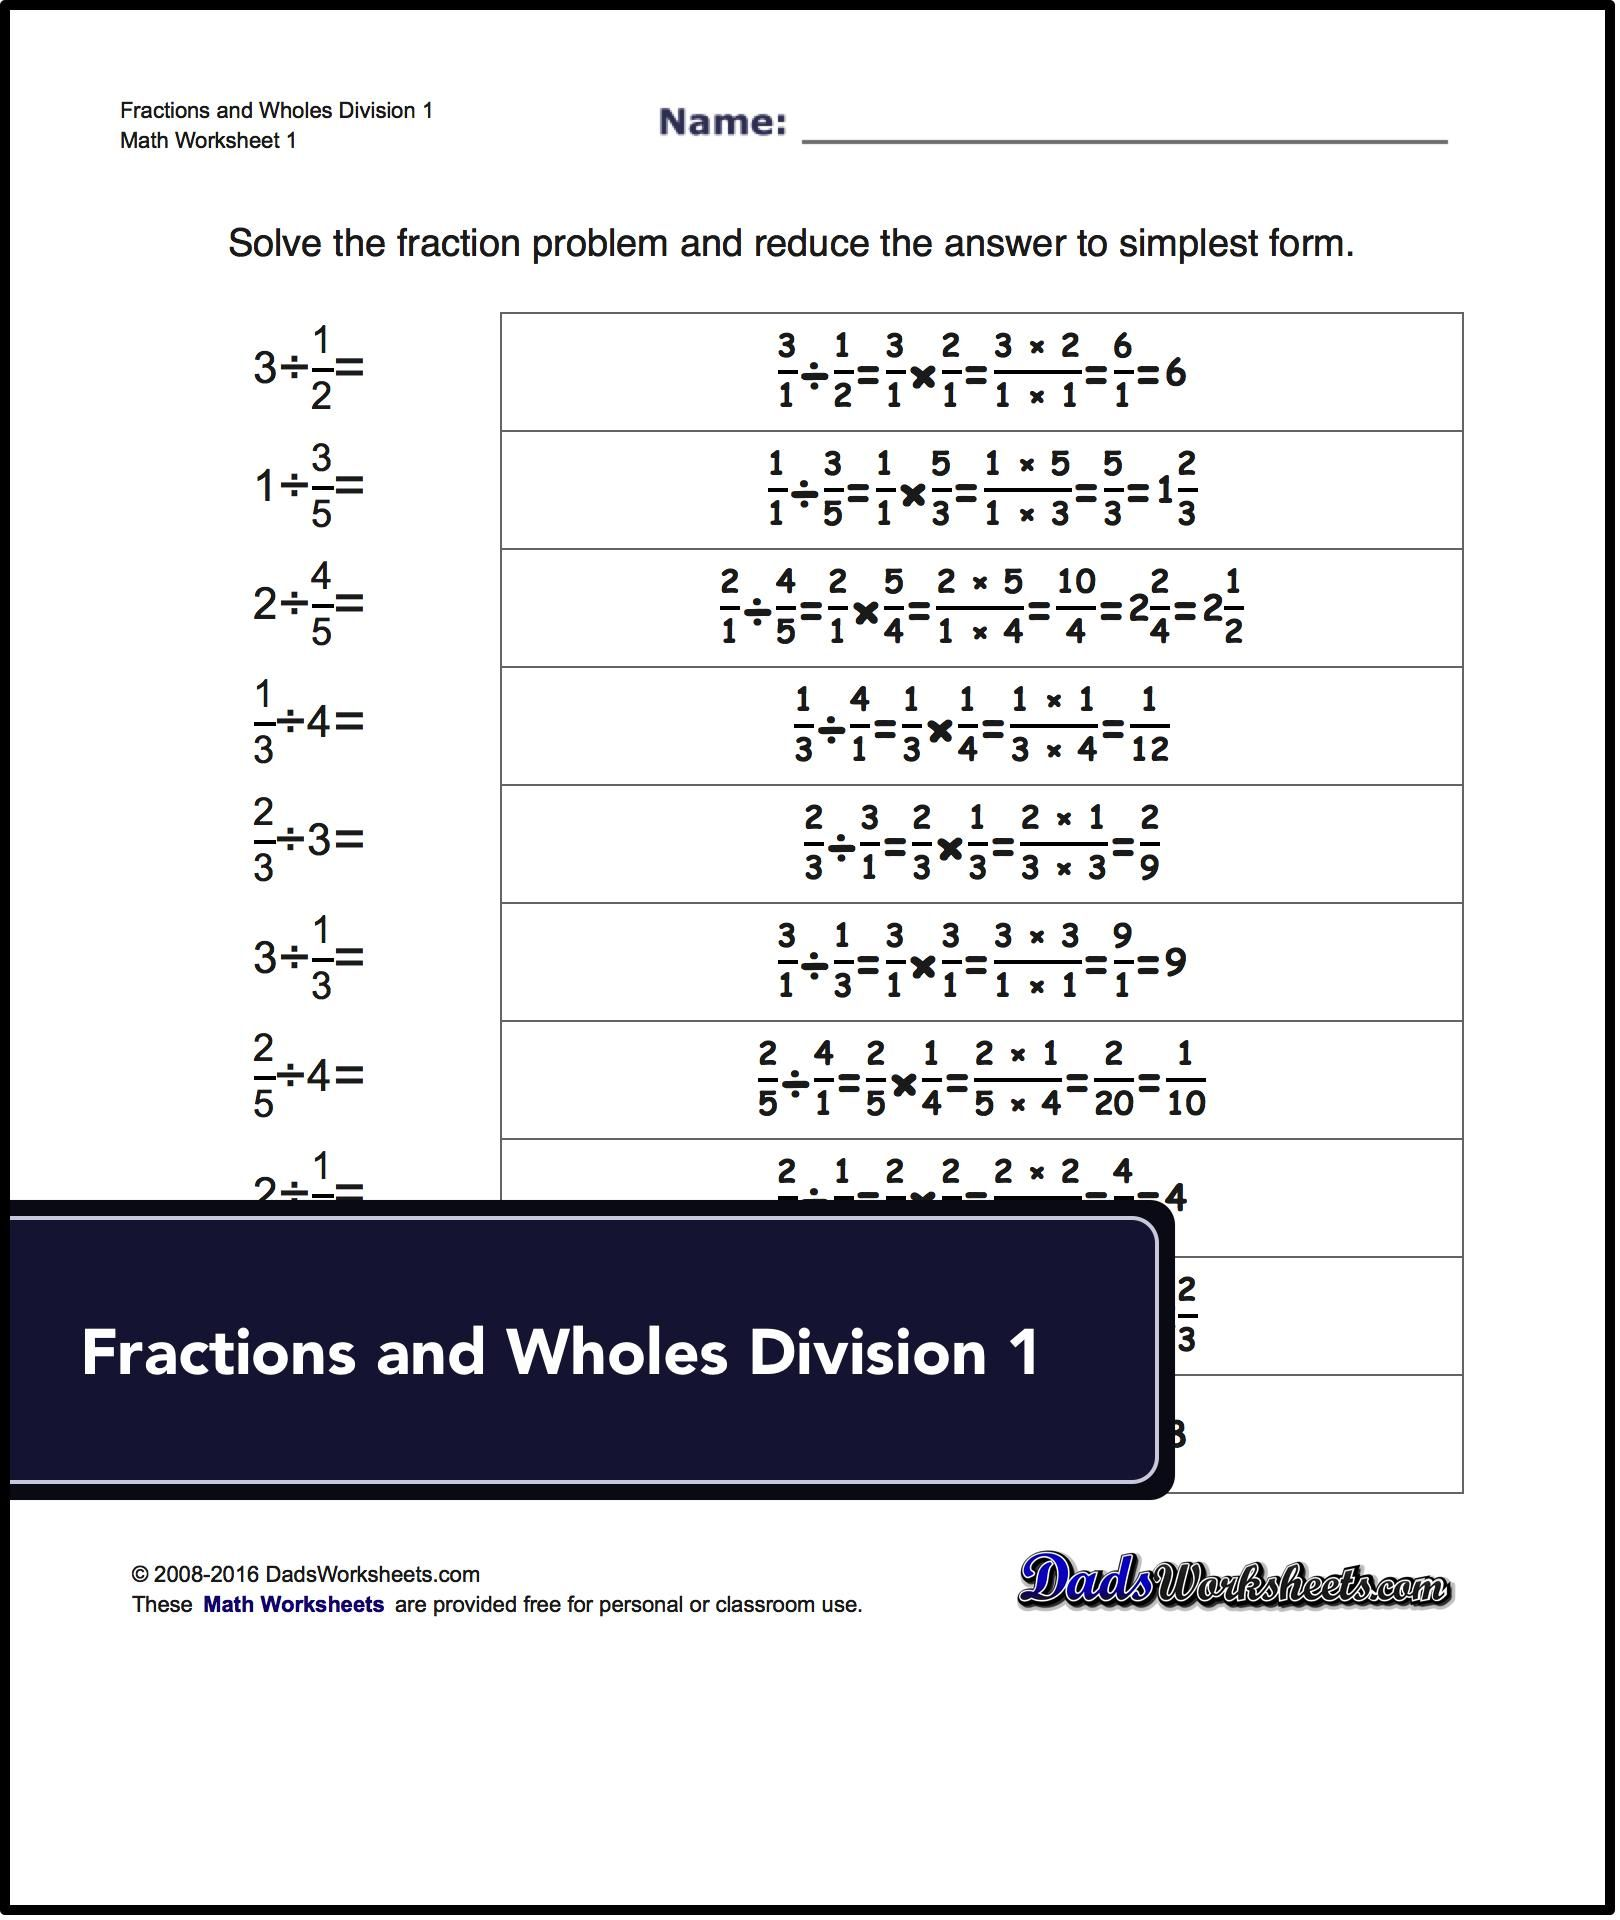 basic fraction division worksheets including dividing fractions with whole numbers and dividing. Black Bedroom Furniture Sets. Home Design Ideas